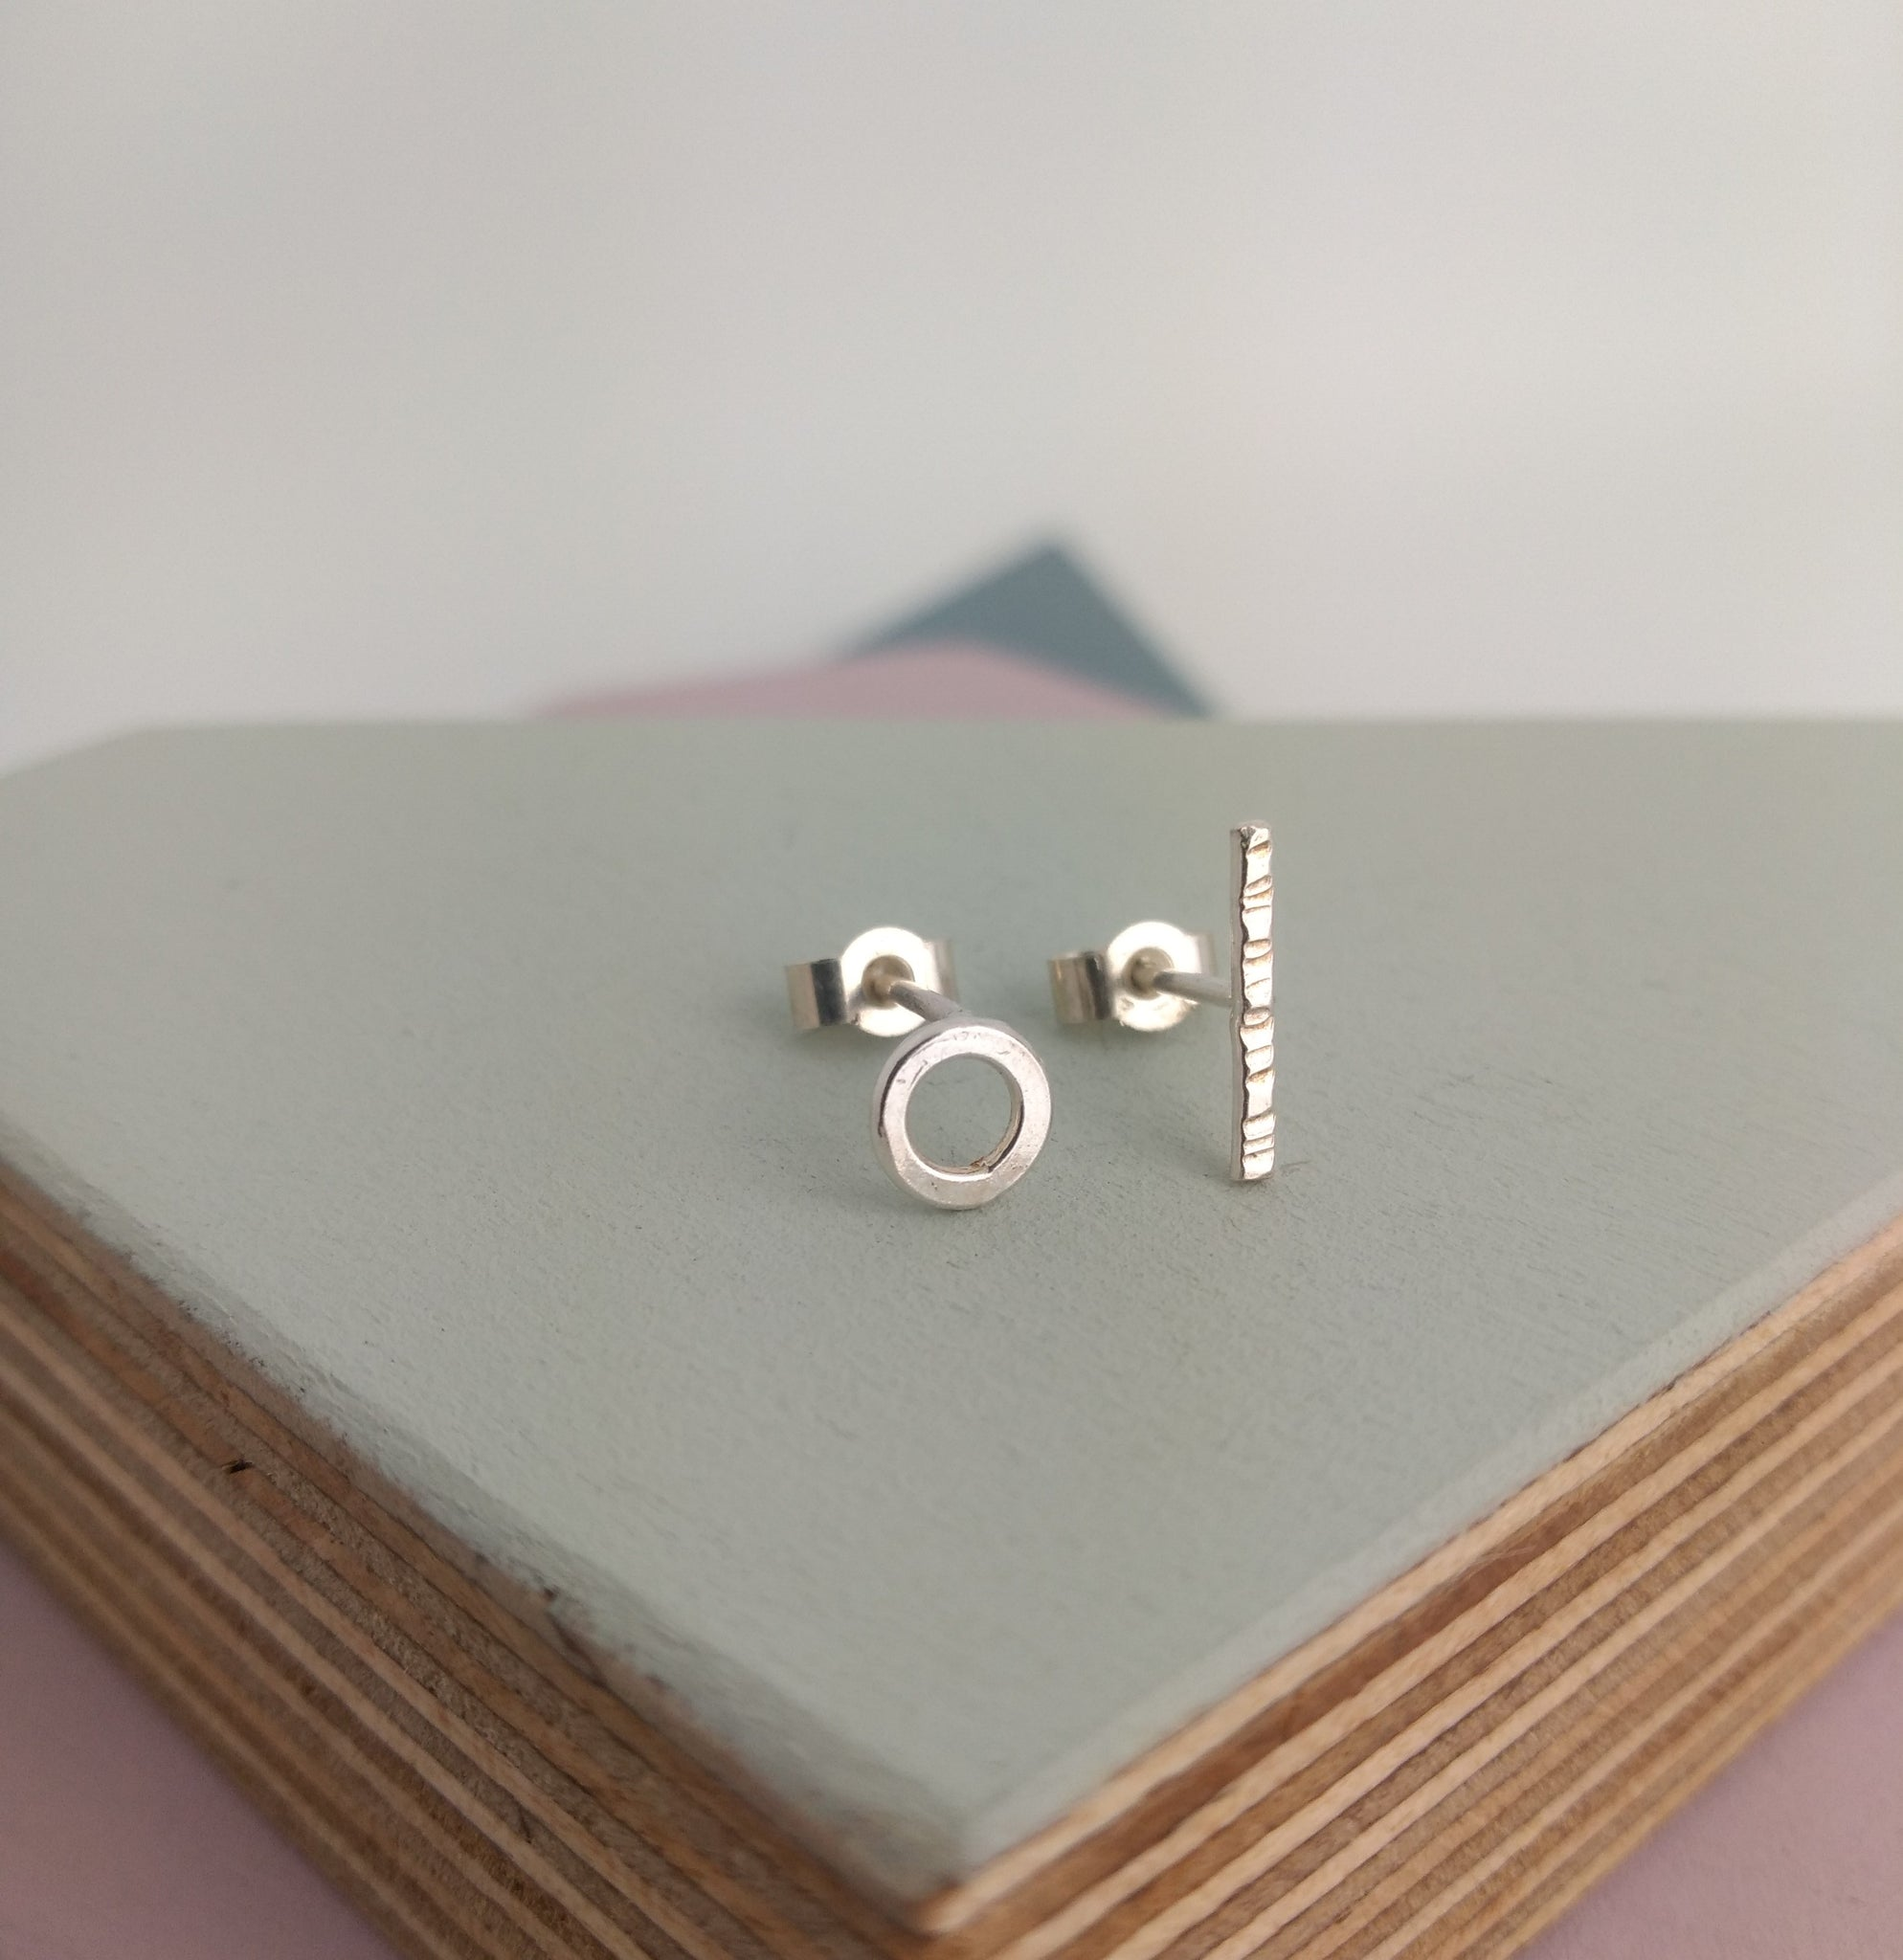 small mis-matched stud earrings in sterling silver one circular one bar textured style